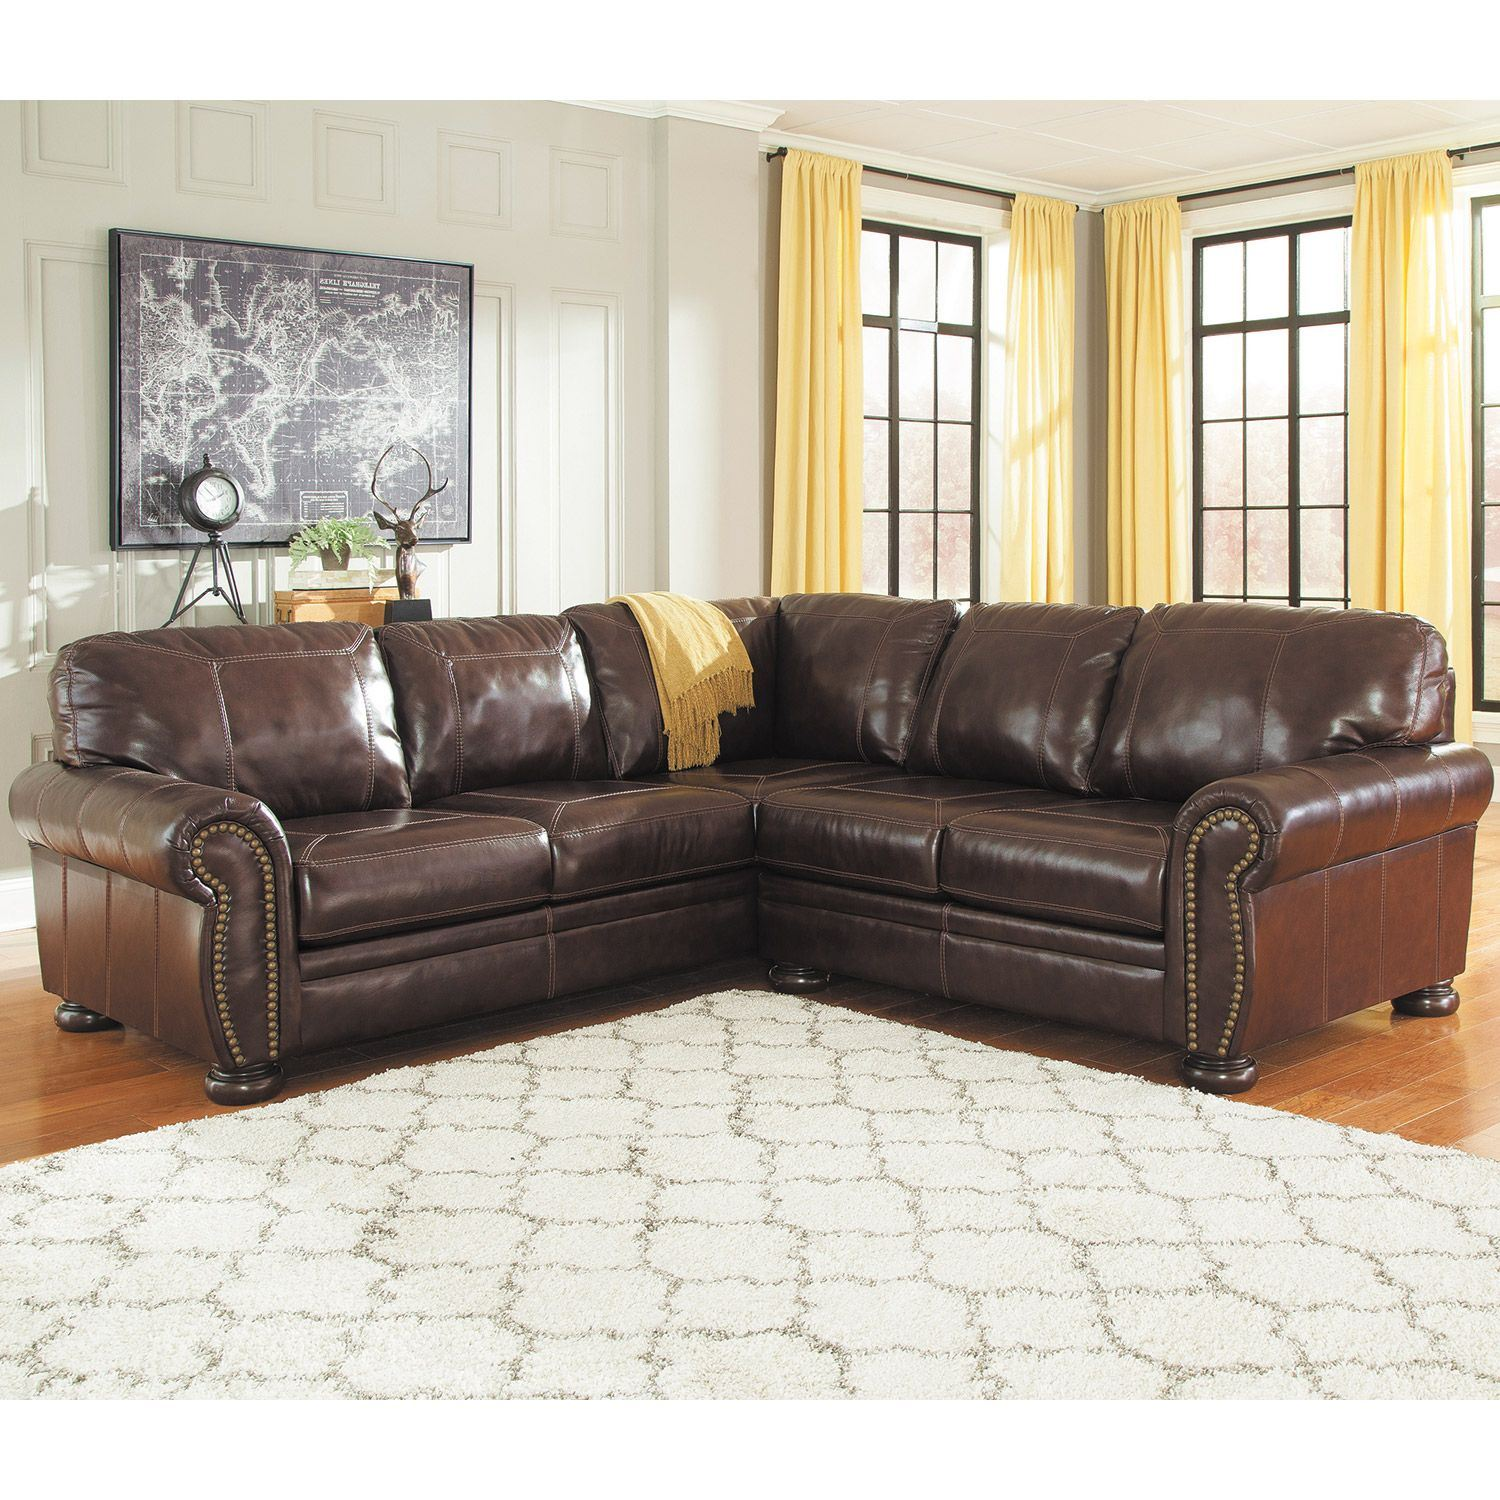 2 pc laf sectional sofa diy seat cushion covers 2pc leather 0h0 504ls ashley